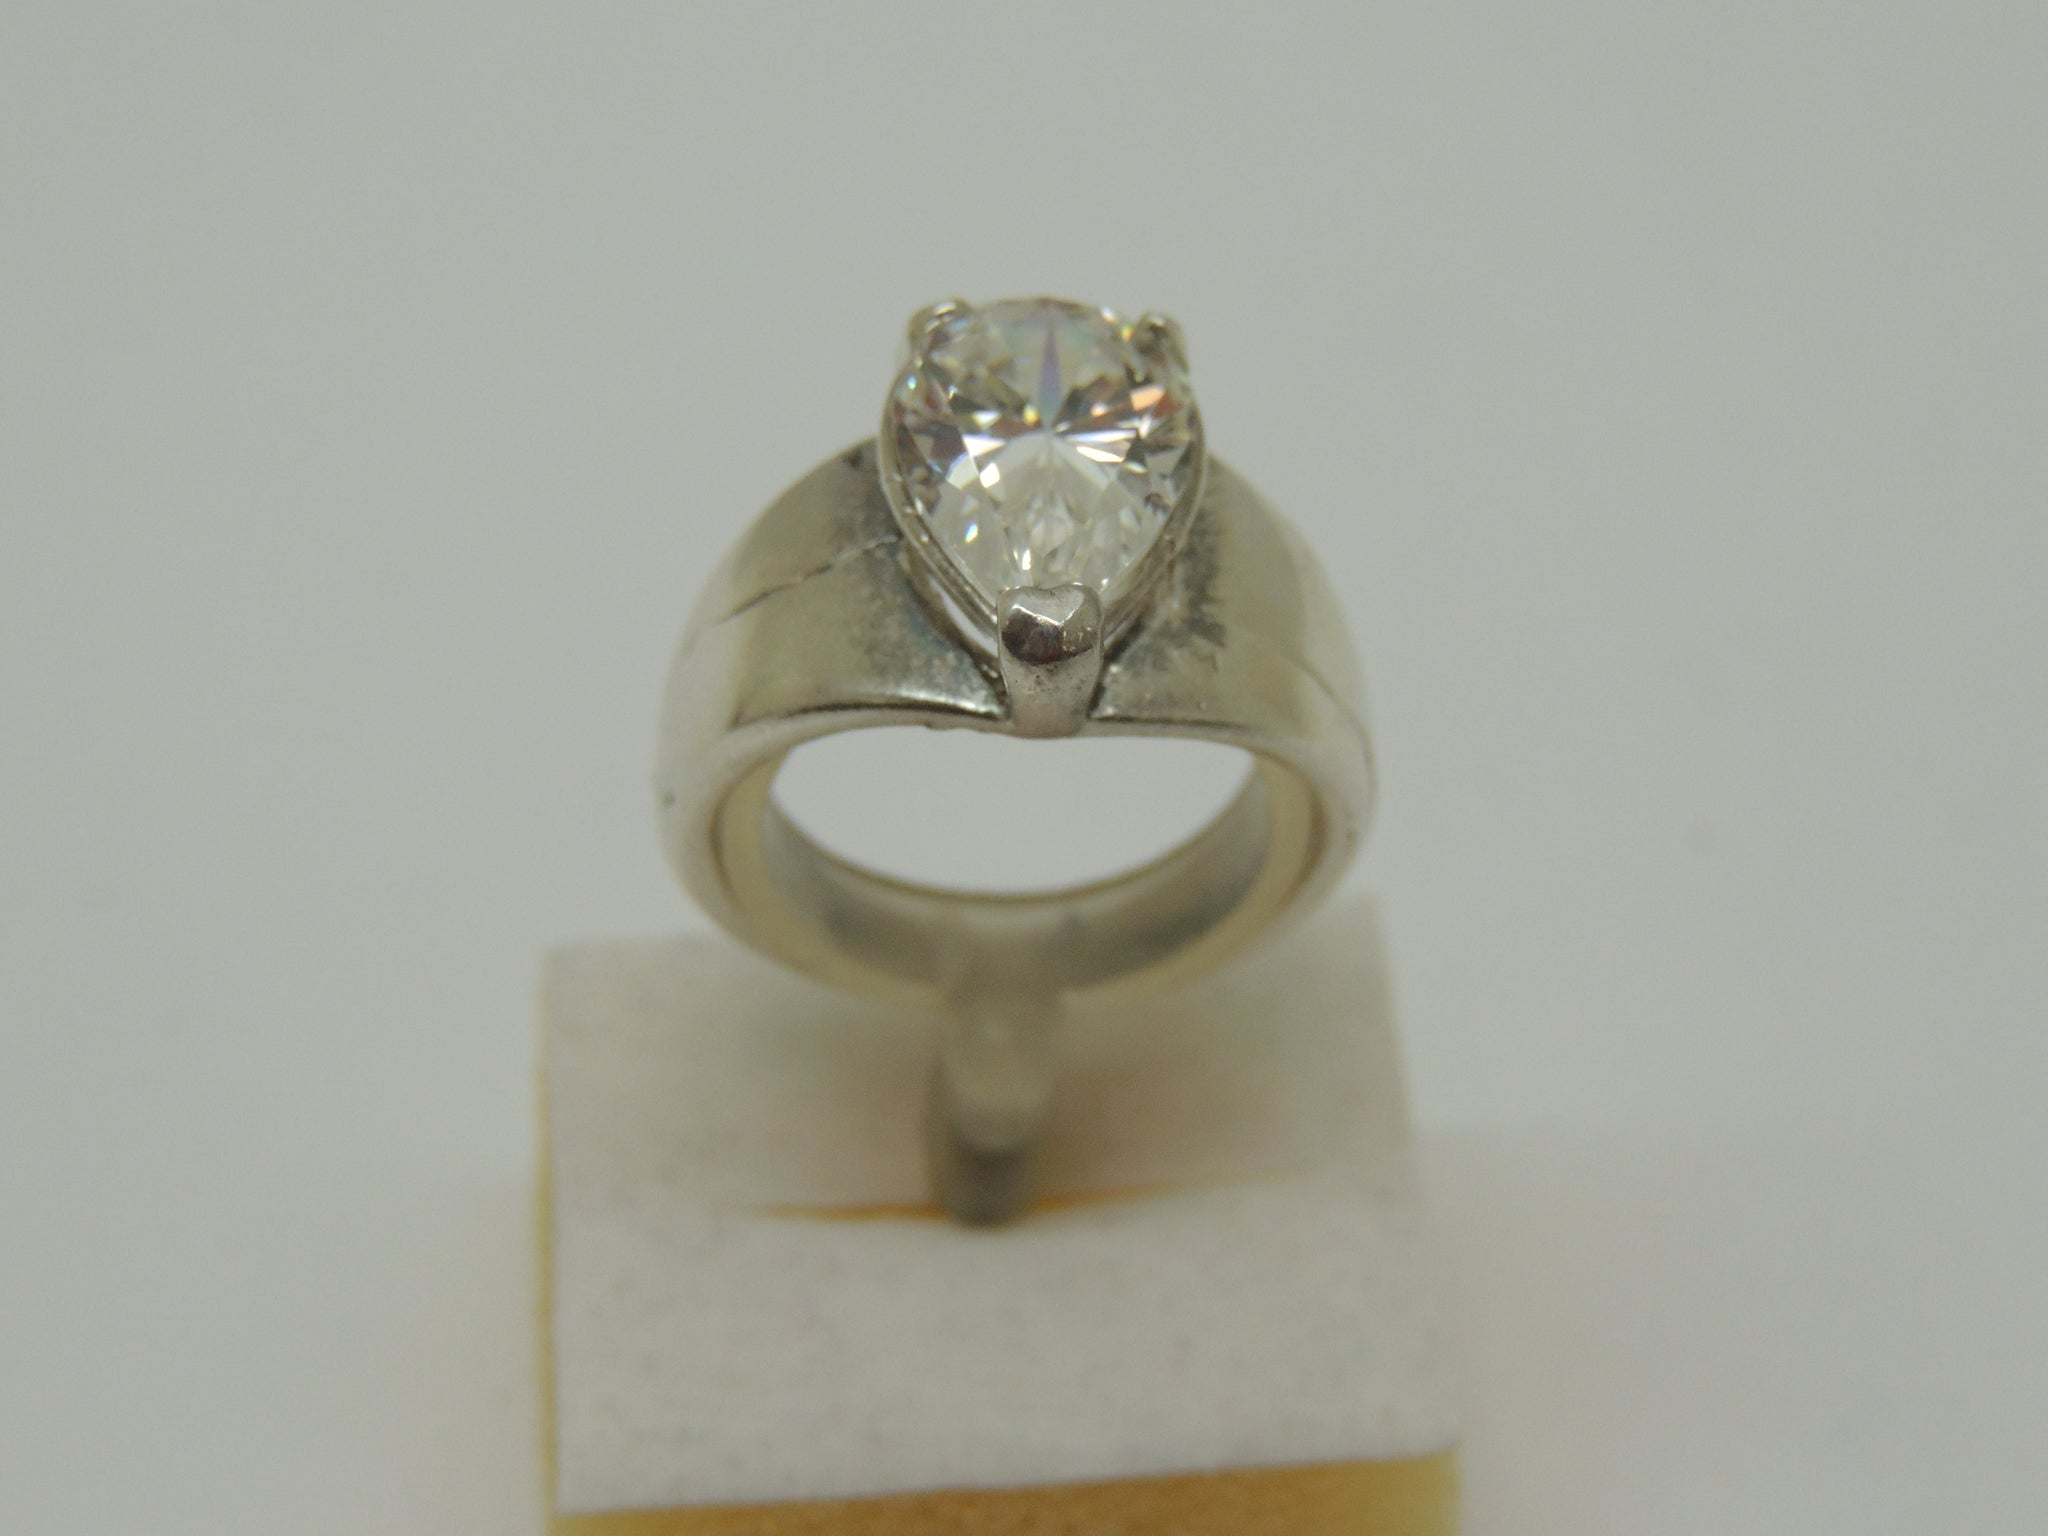 Solid Sterling Silver Lady's Cubic Zirconia Ring